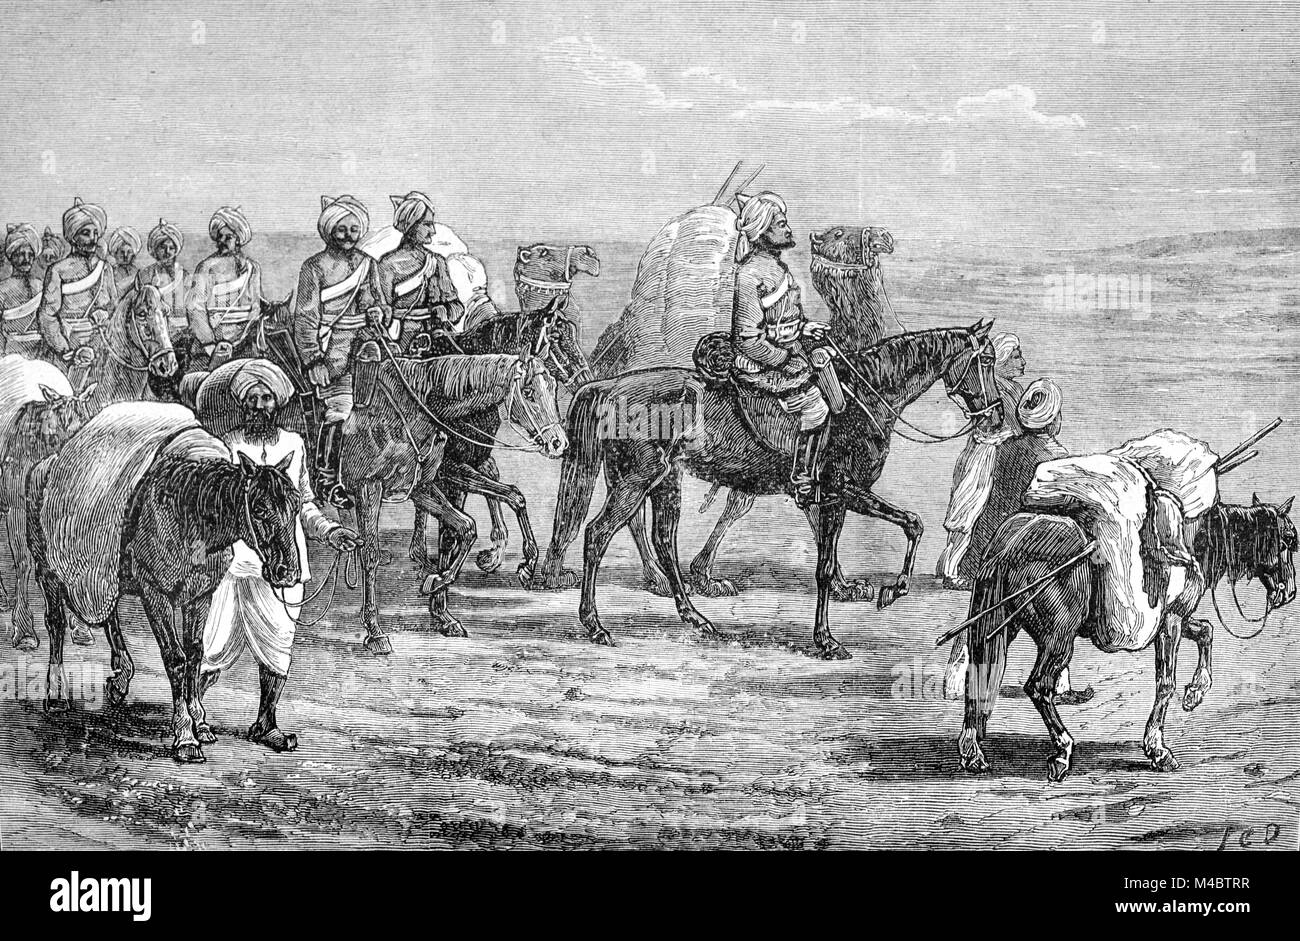 Indian Cavalry of British Army Fighting During the Second Anglo-Afghan War Afghanistan (1878-1880) between the British - Stock Image